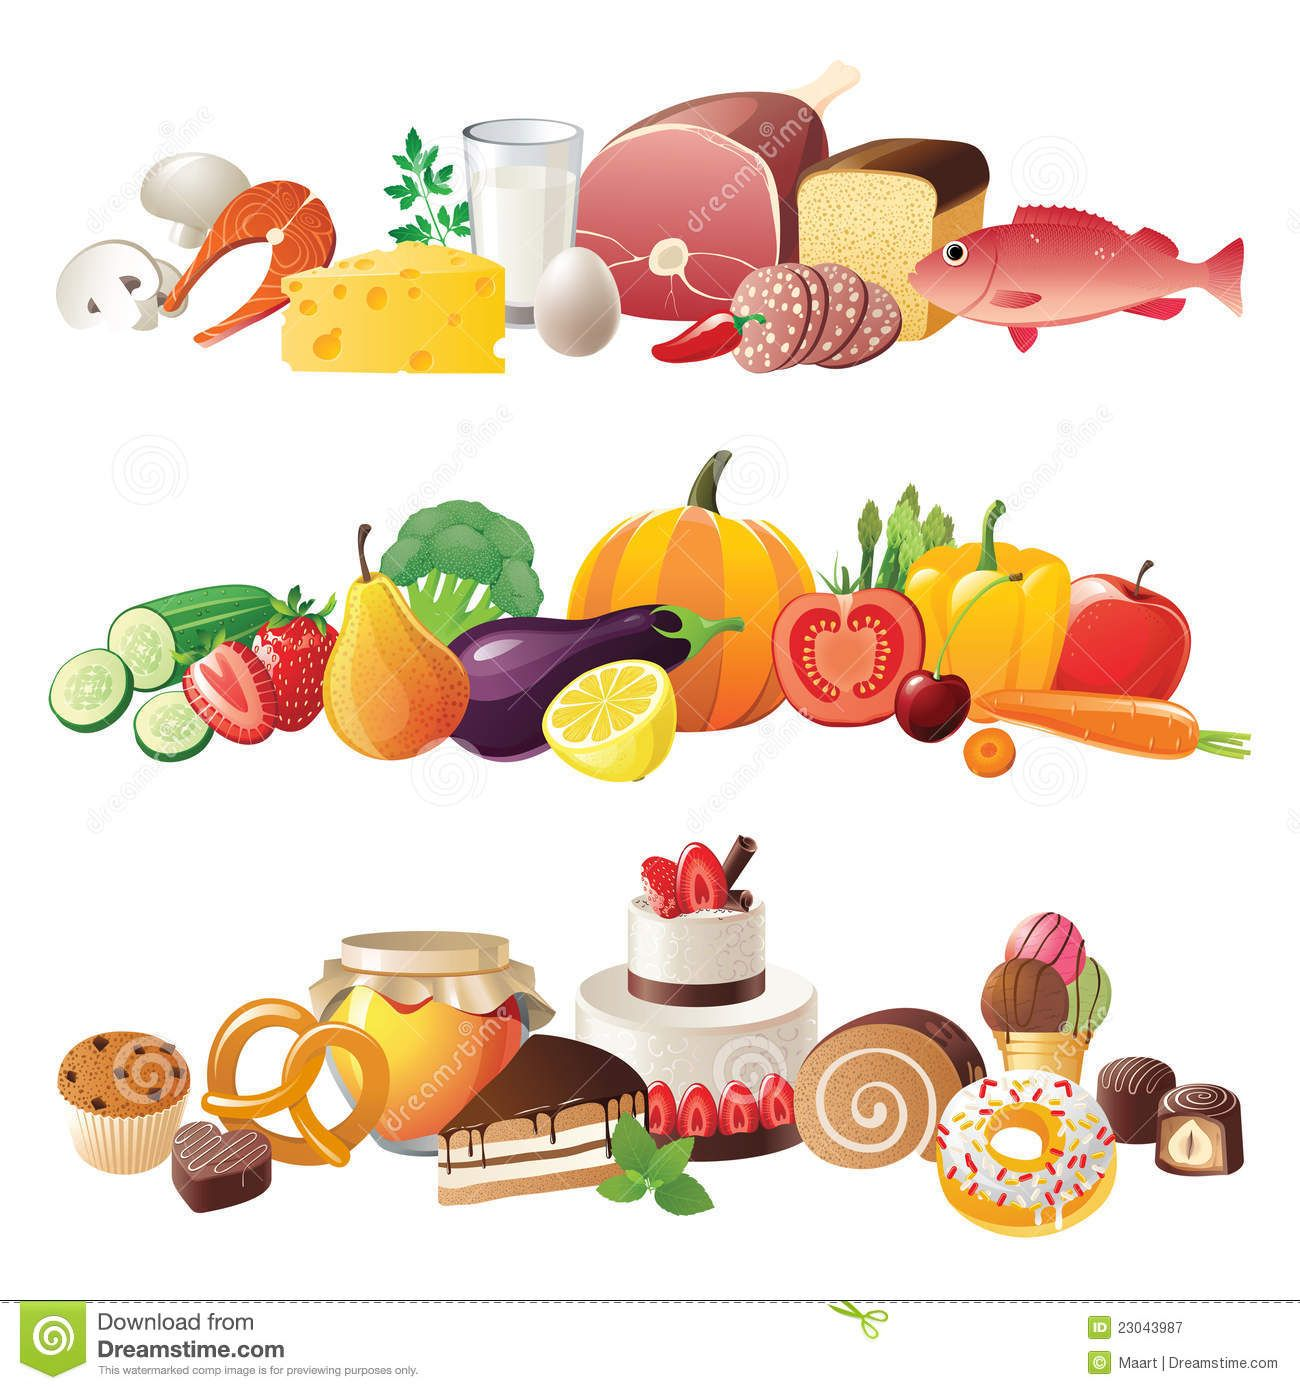 Share cooking clipart border with no watermark